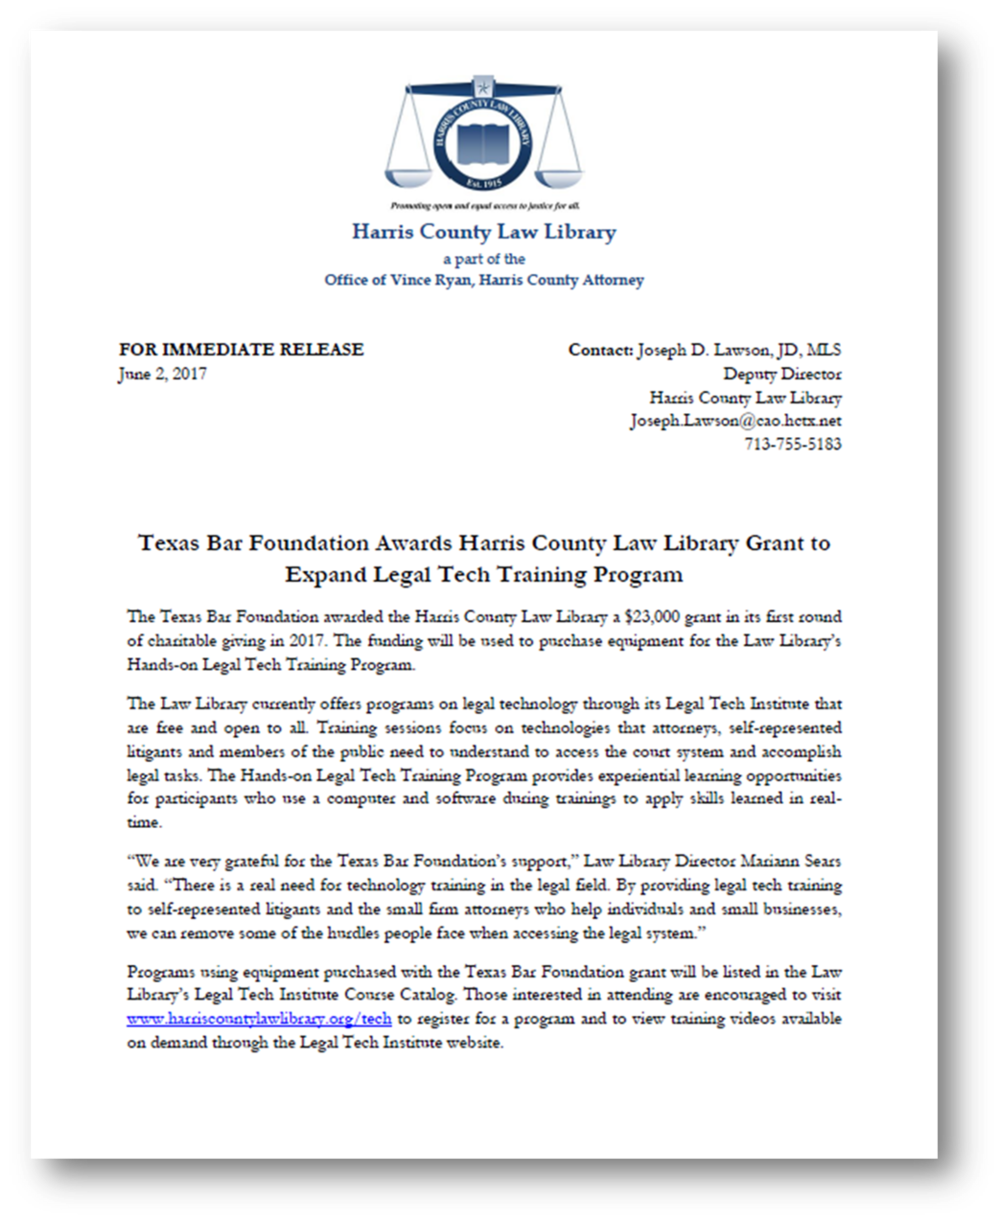 Click for press release concerning Texas Bar Foundation grant to Harris County Law Library for Hands-on Legal Tech Training program.